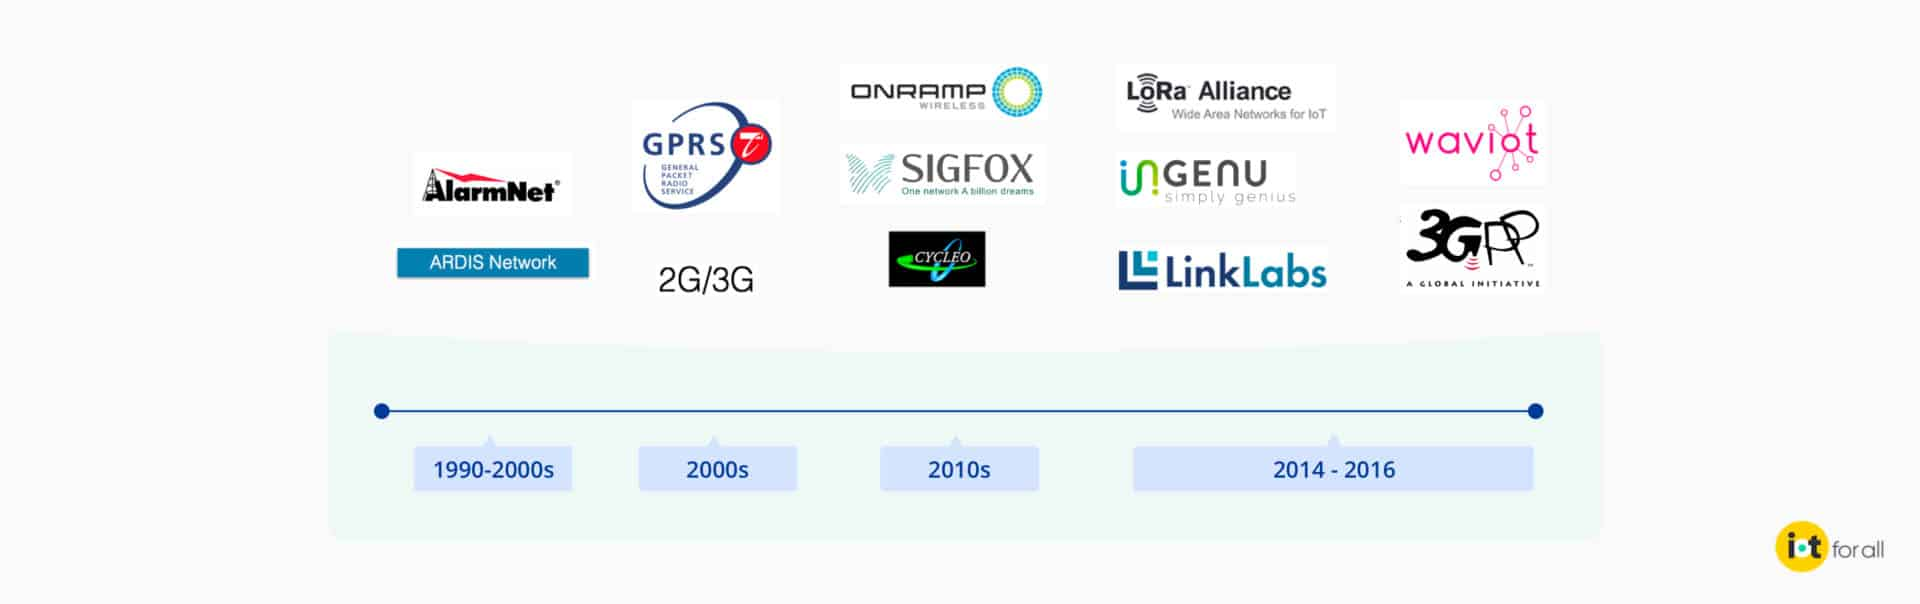 A history of LPWAN technologies through the companies that have developed the solutions since 1990.